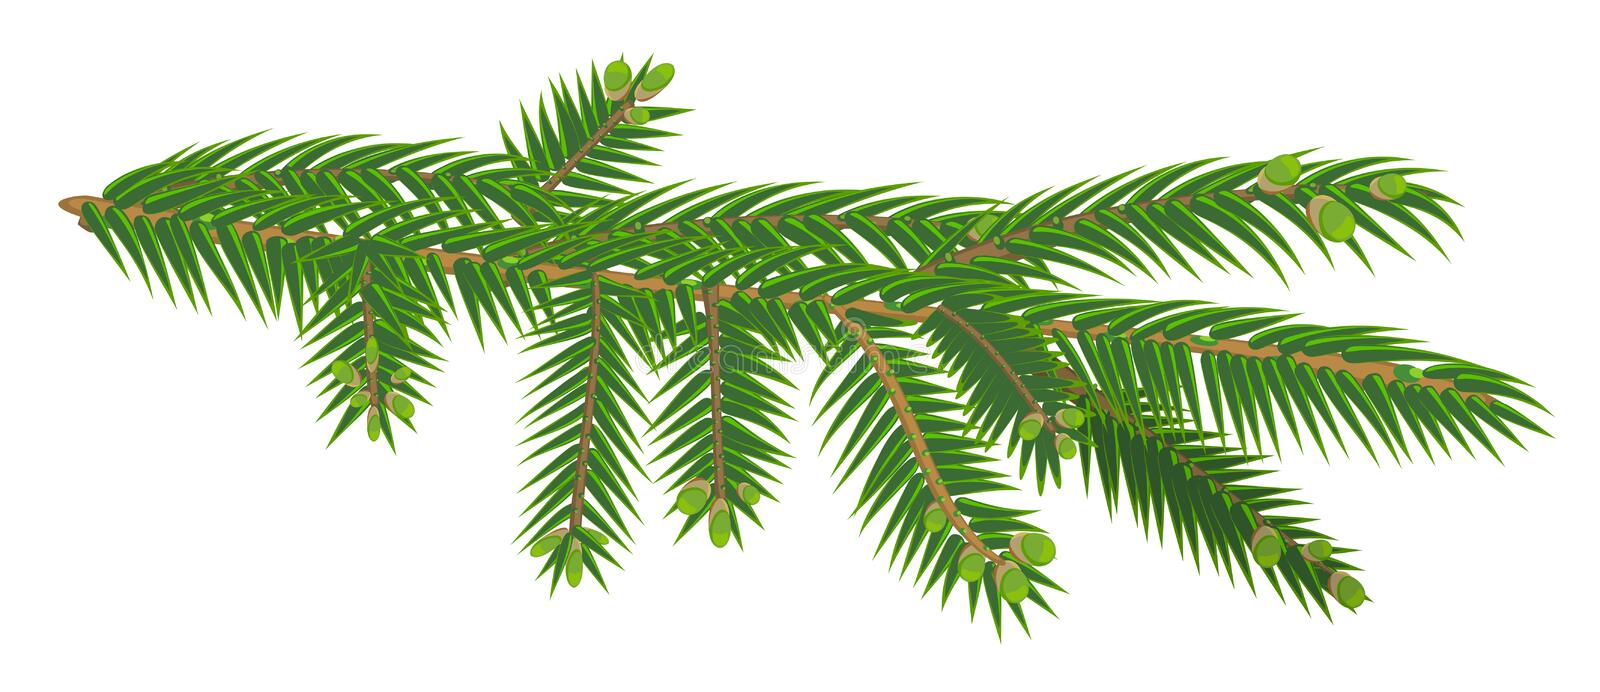 Green branch of fir tree isolated on white background. Vector illustration royalty free illustration